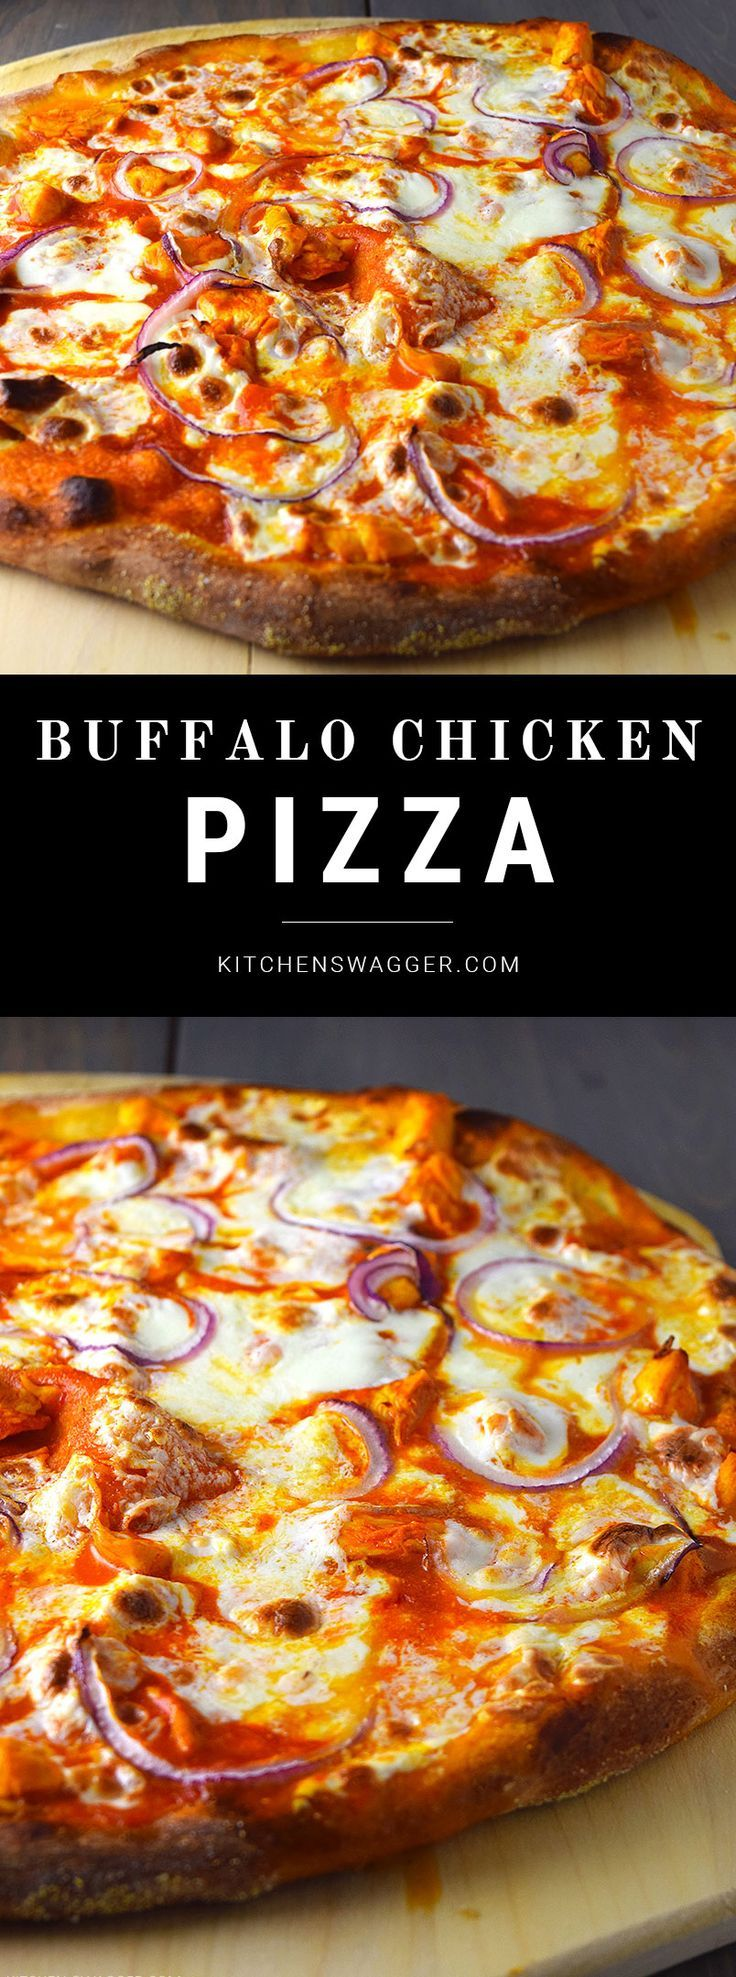 Buffalo chicken pizza made with chicken, red onions, and fresh mozzarella cheese.